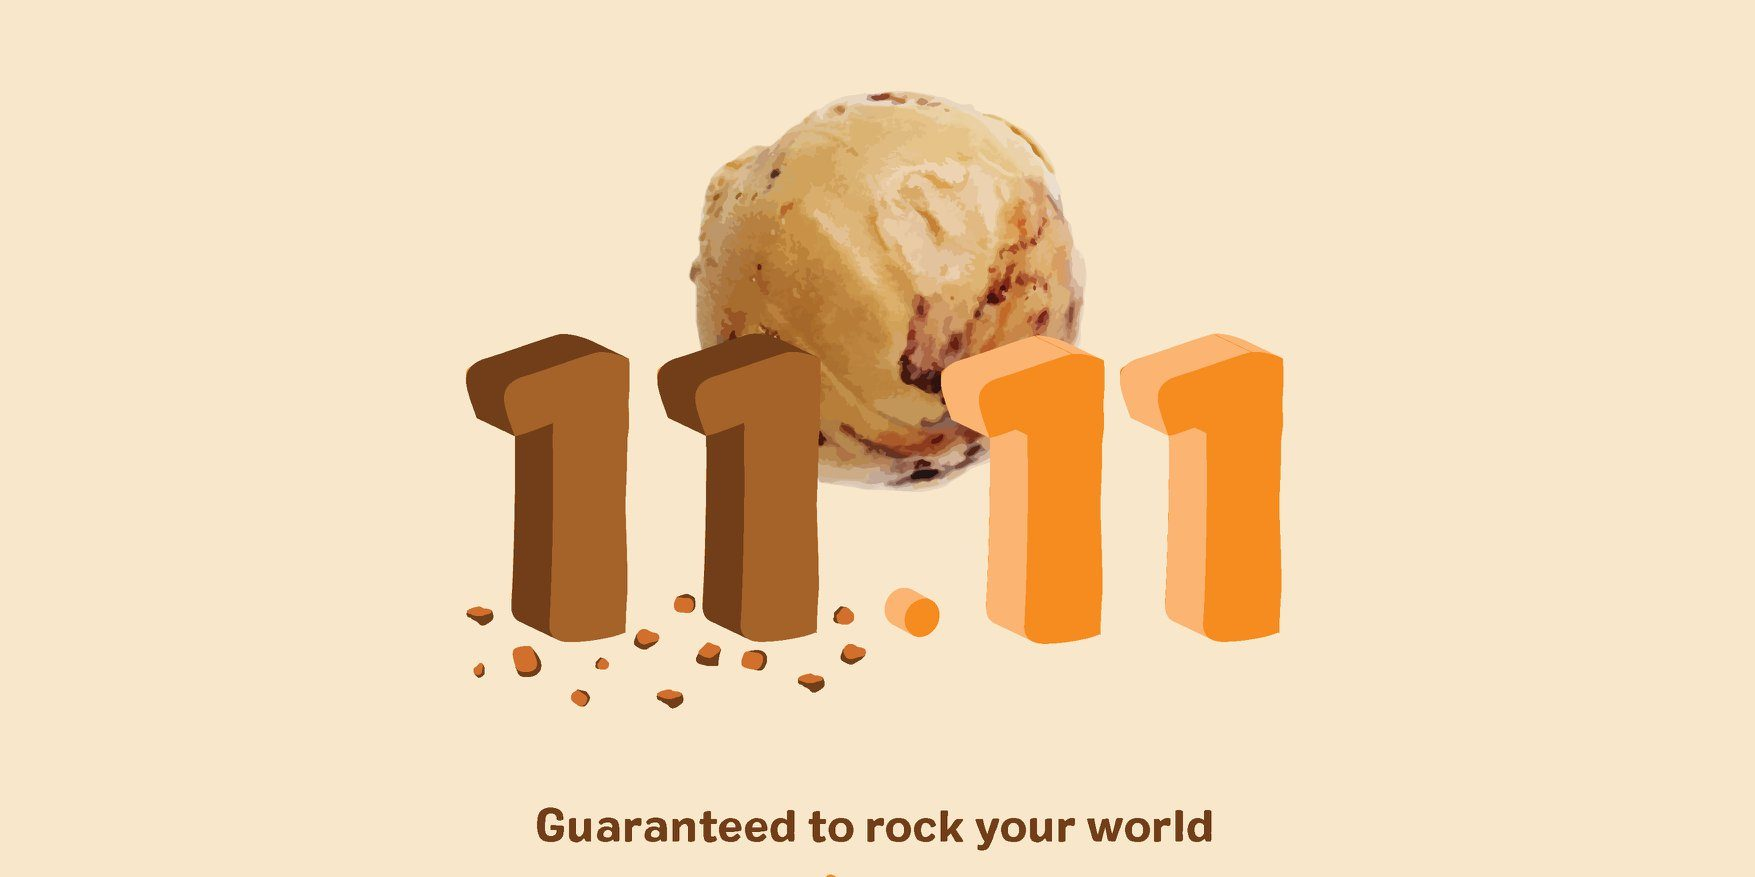 Udders Singapore Mocha Rocks Flavour Now Available This 11.11 Promotion While Stocks Last